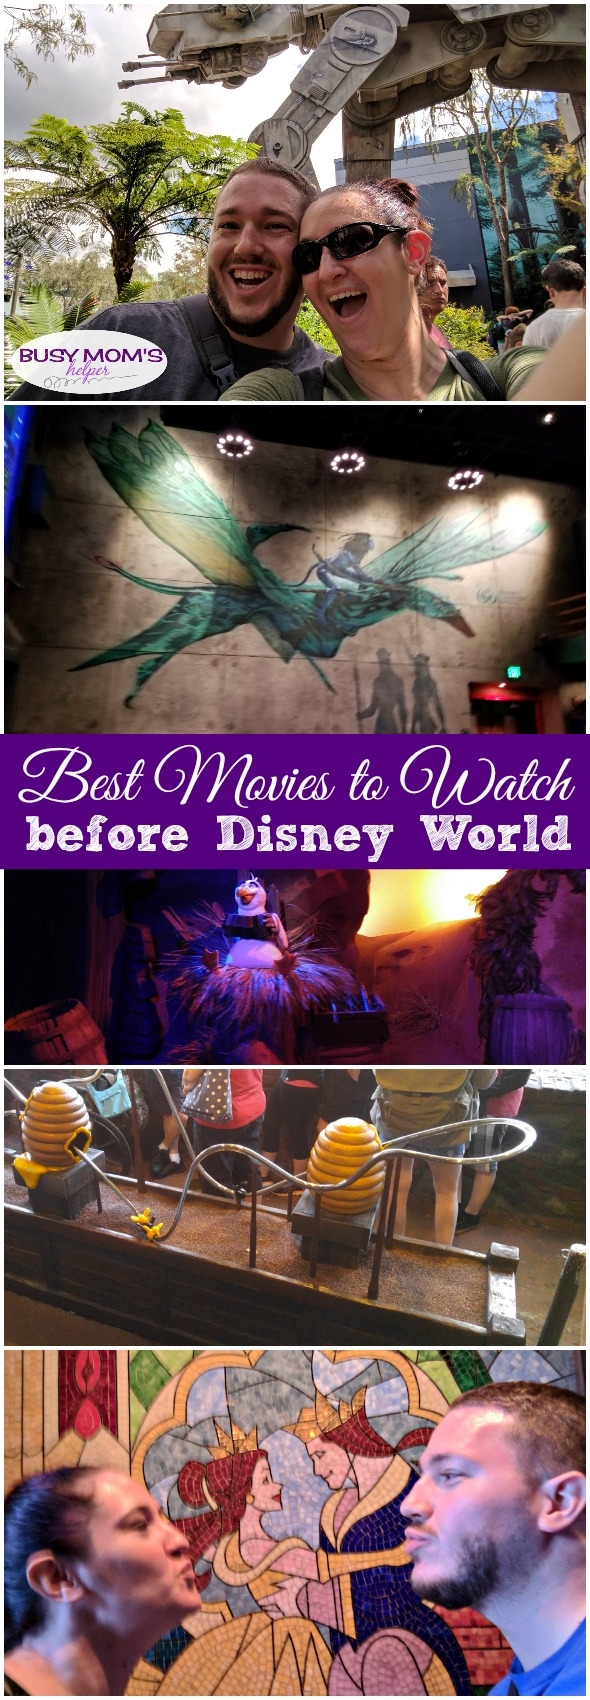 Best Movies to Watch Before Disney World #disney #waltdisneyworld #travel #movies #disneymovies #familytravel